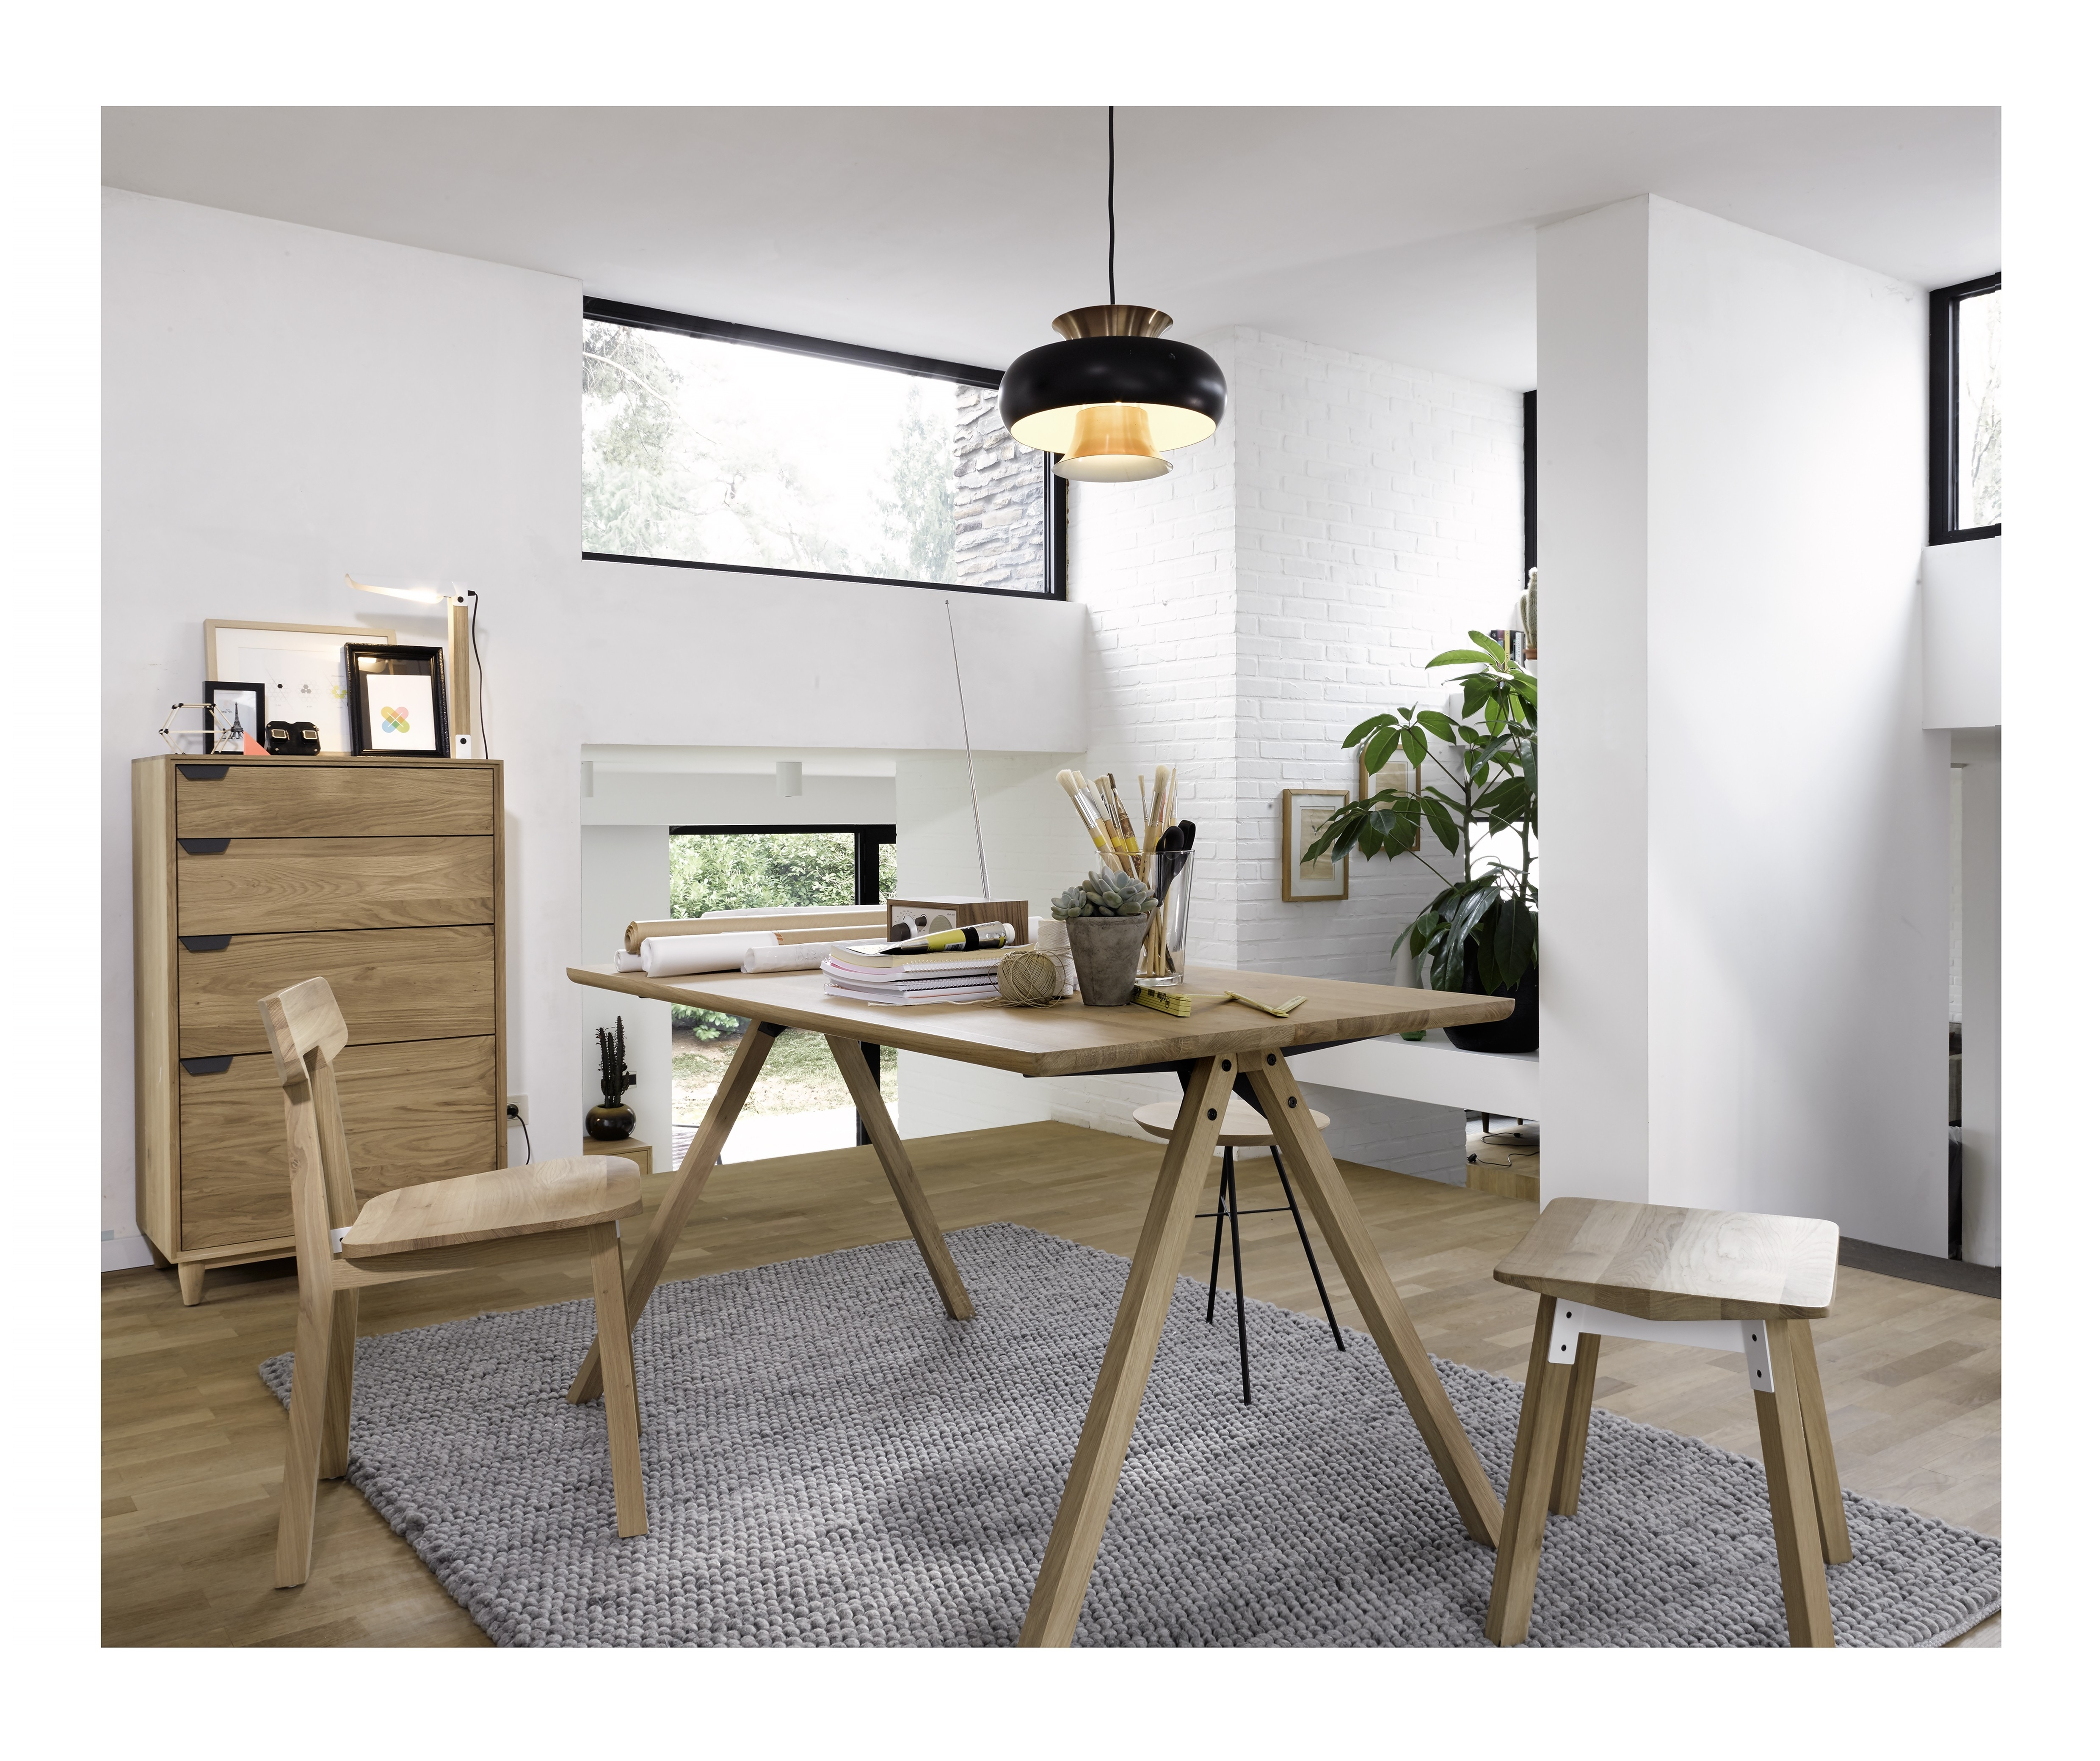 180Cm Dining Tables Within Well Known 180Cm Dining Table – Dining Tables Ideas (View 5 of 25)